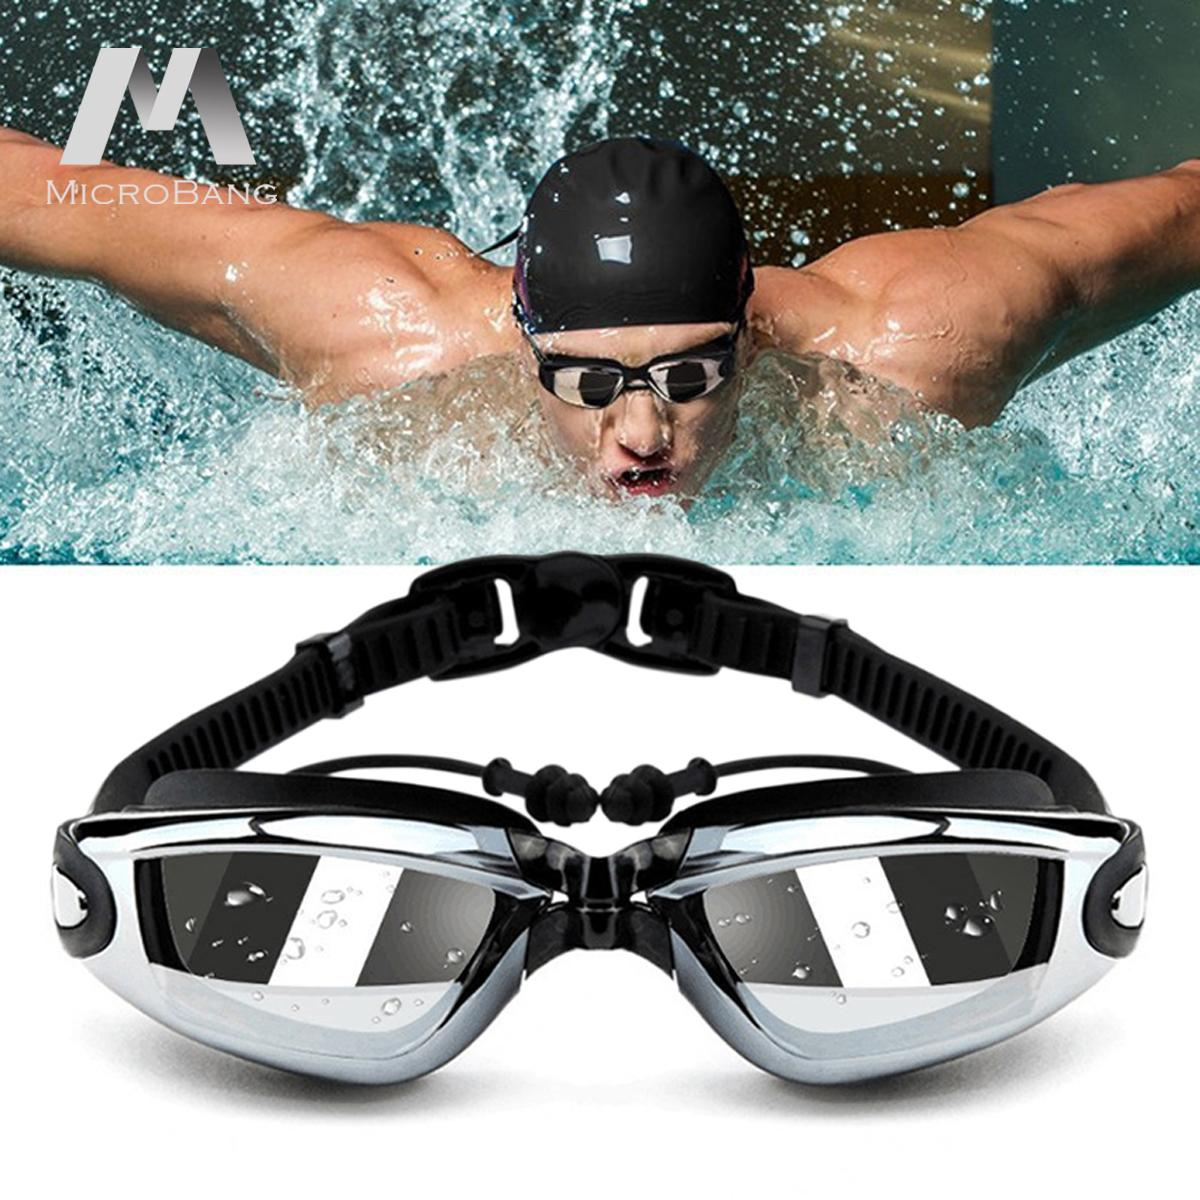 01503411ce2a Swimming for sale - Swimming Equipment online brands